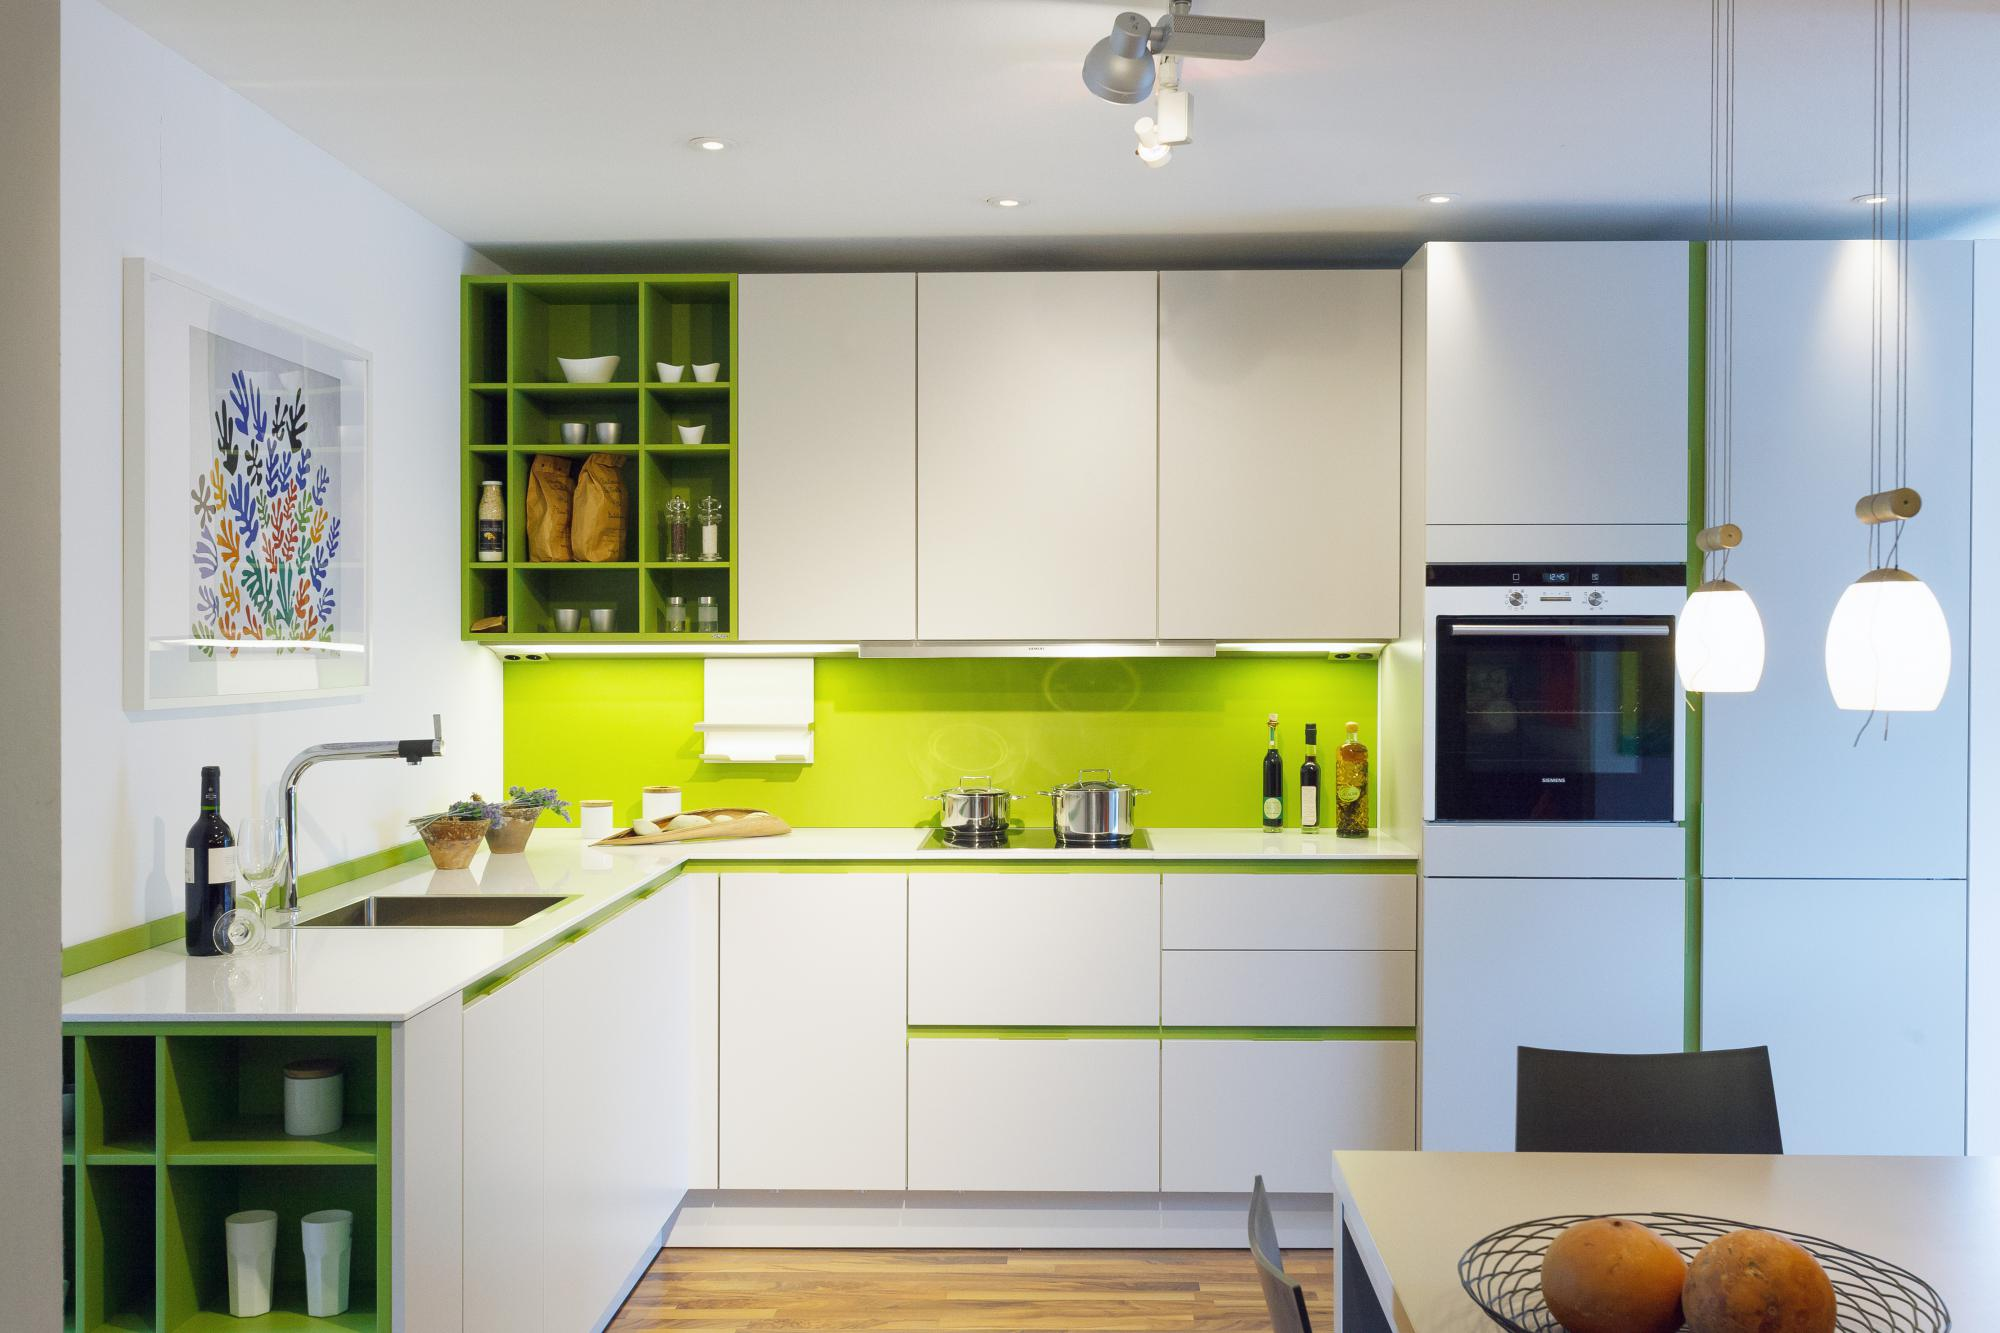 Contemporary Design Inspiration: Kitchens With A Pop Of Color